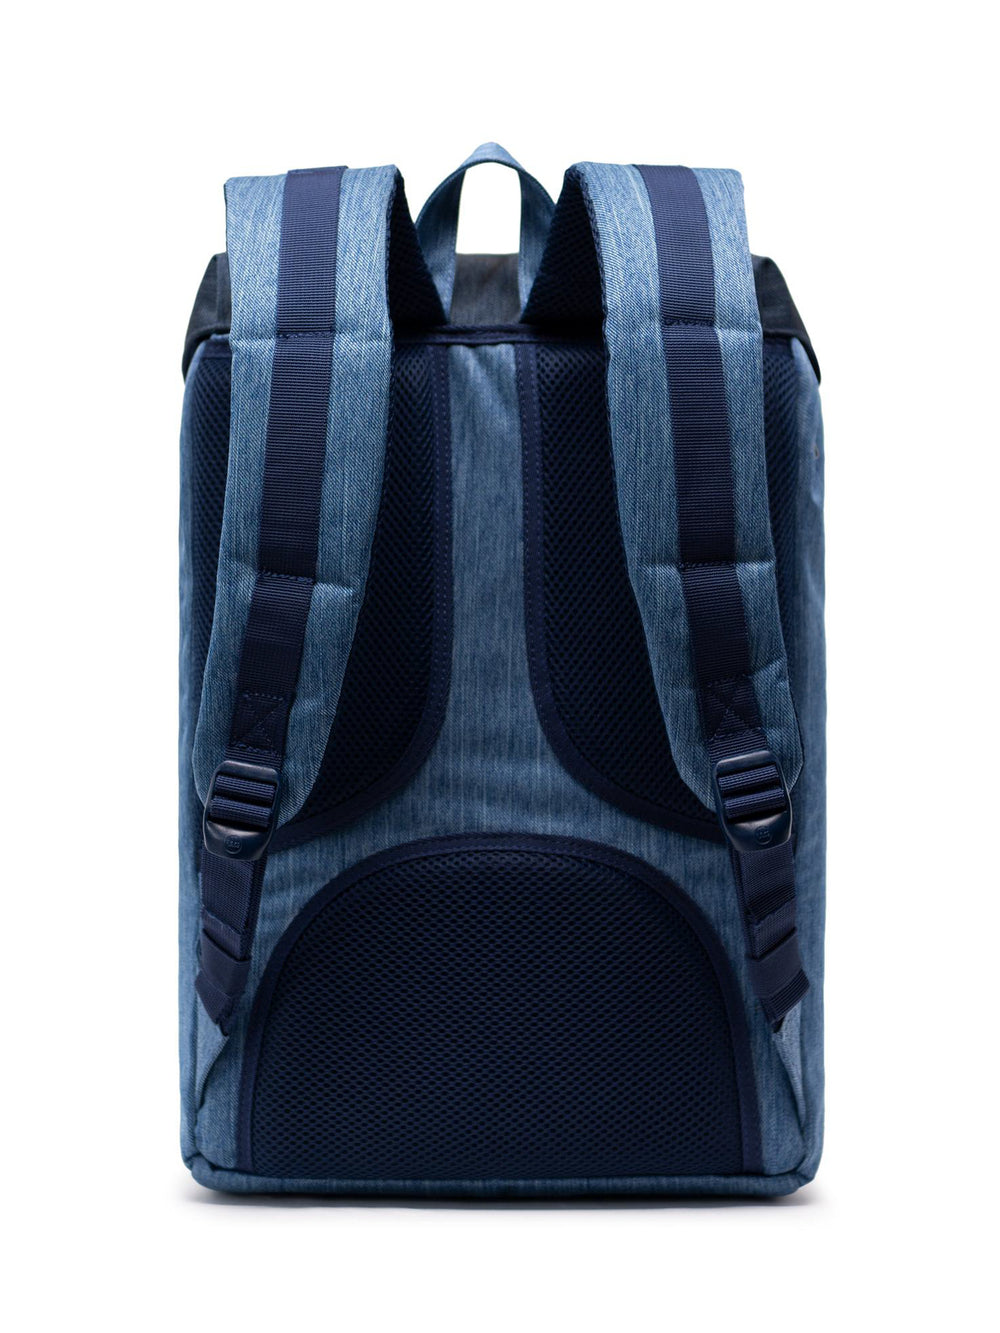 LITTLE AMERICA 25L - DENIM